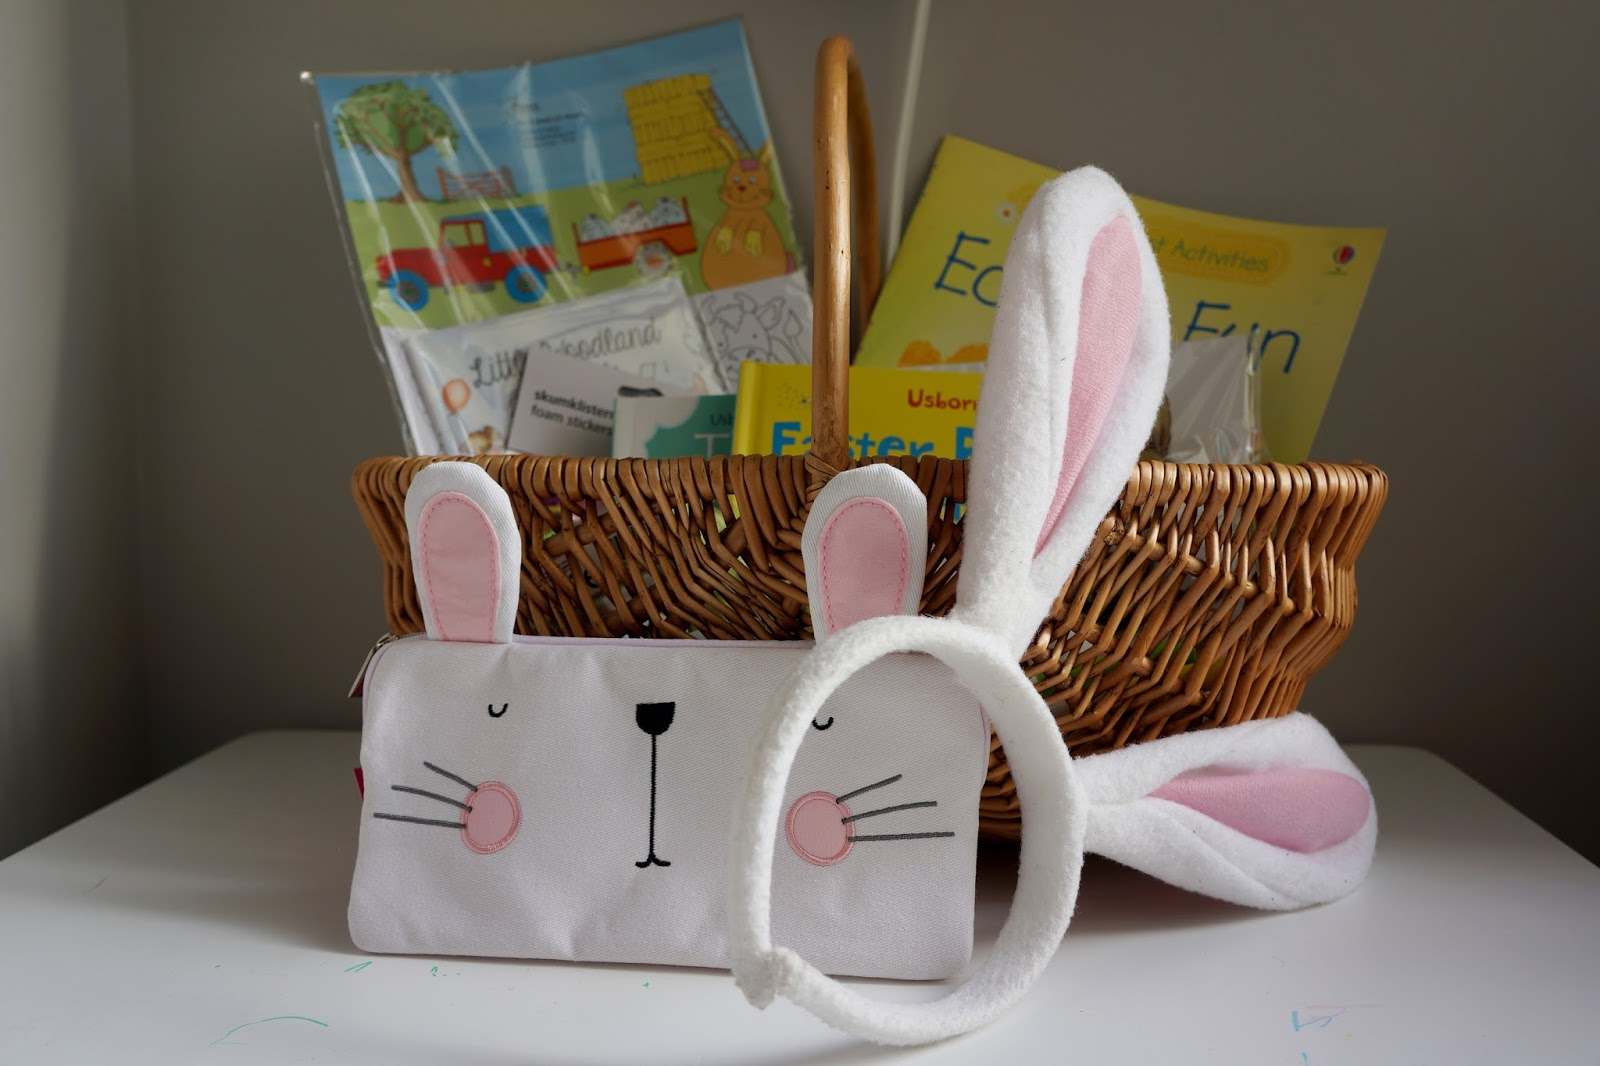 bunny ears and a bunny pencil case